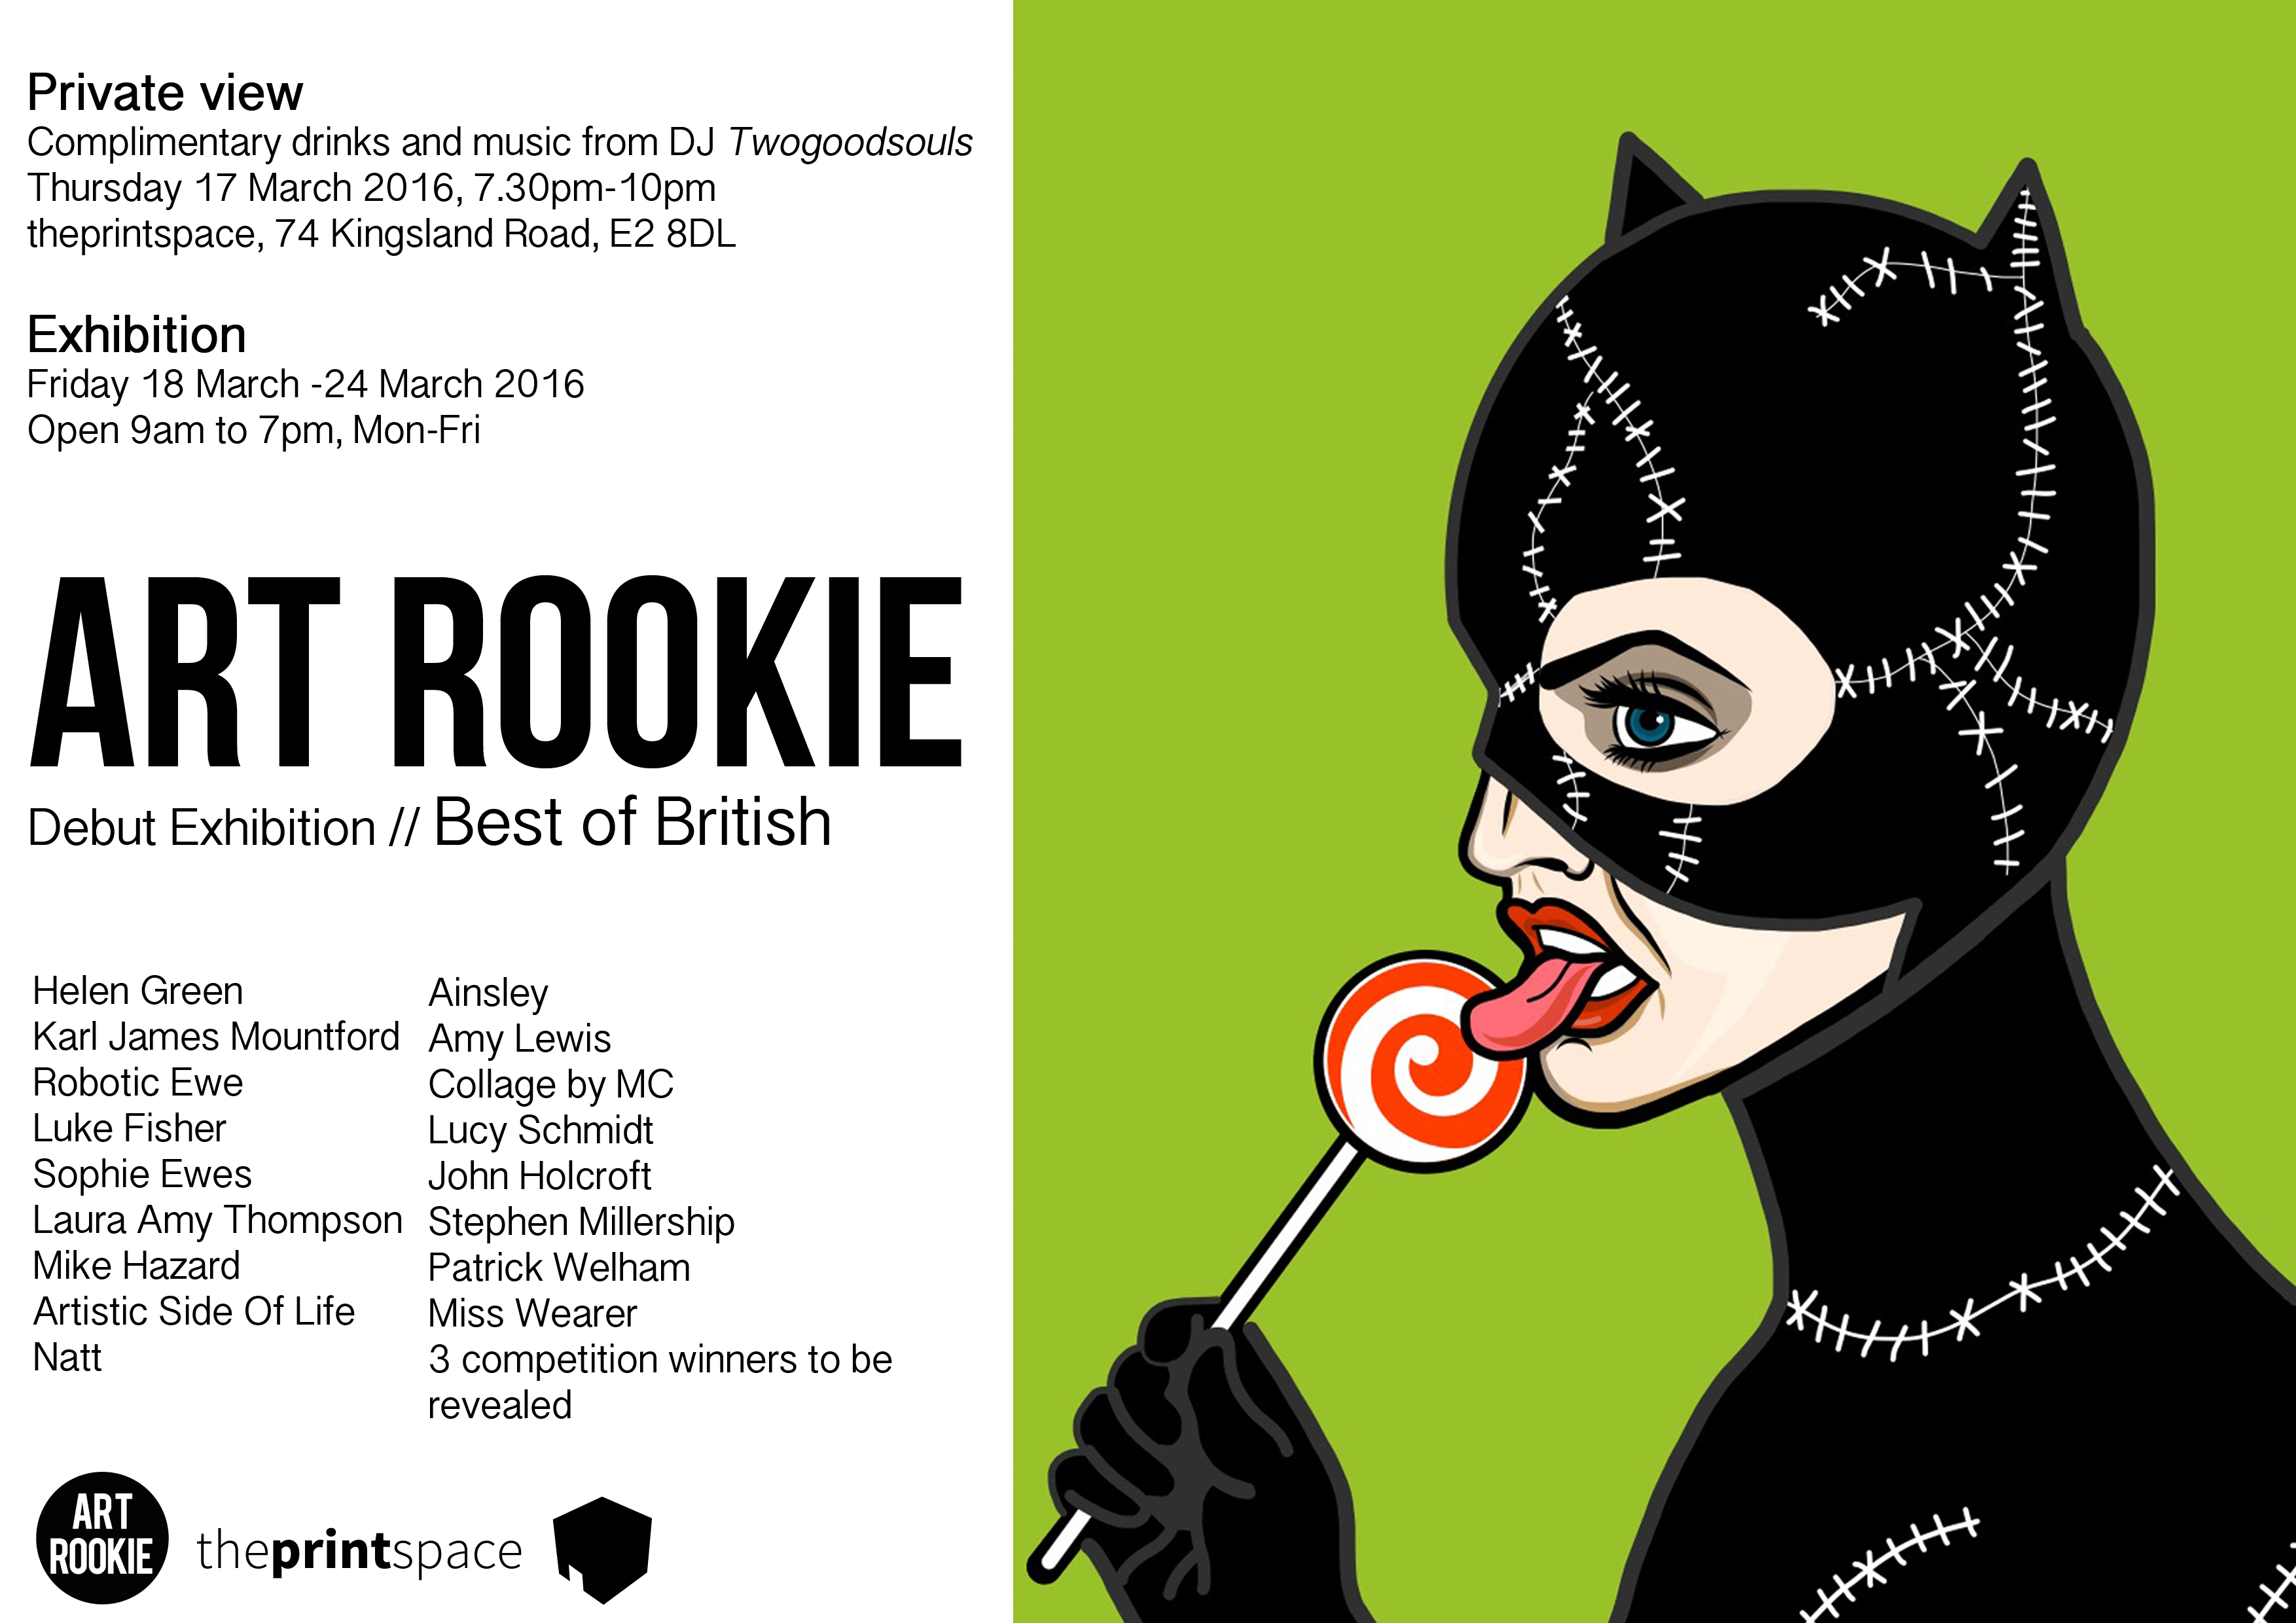 Art Rookie Debut Exhibition March 2016